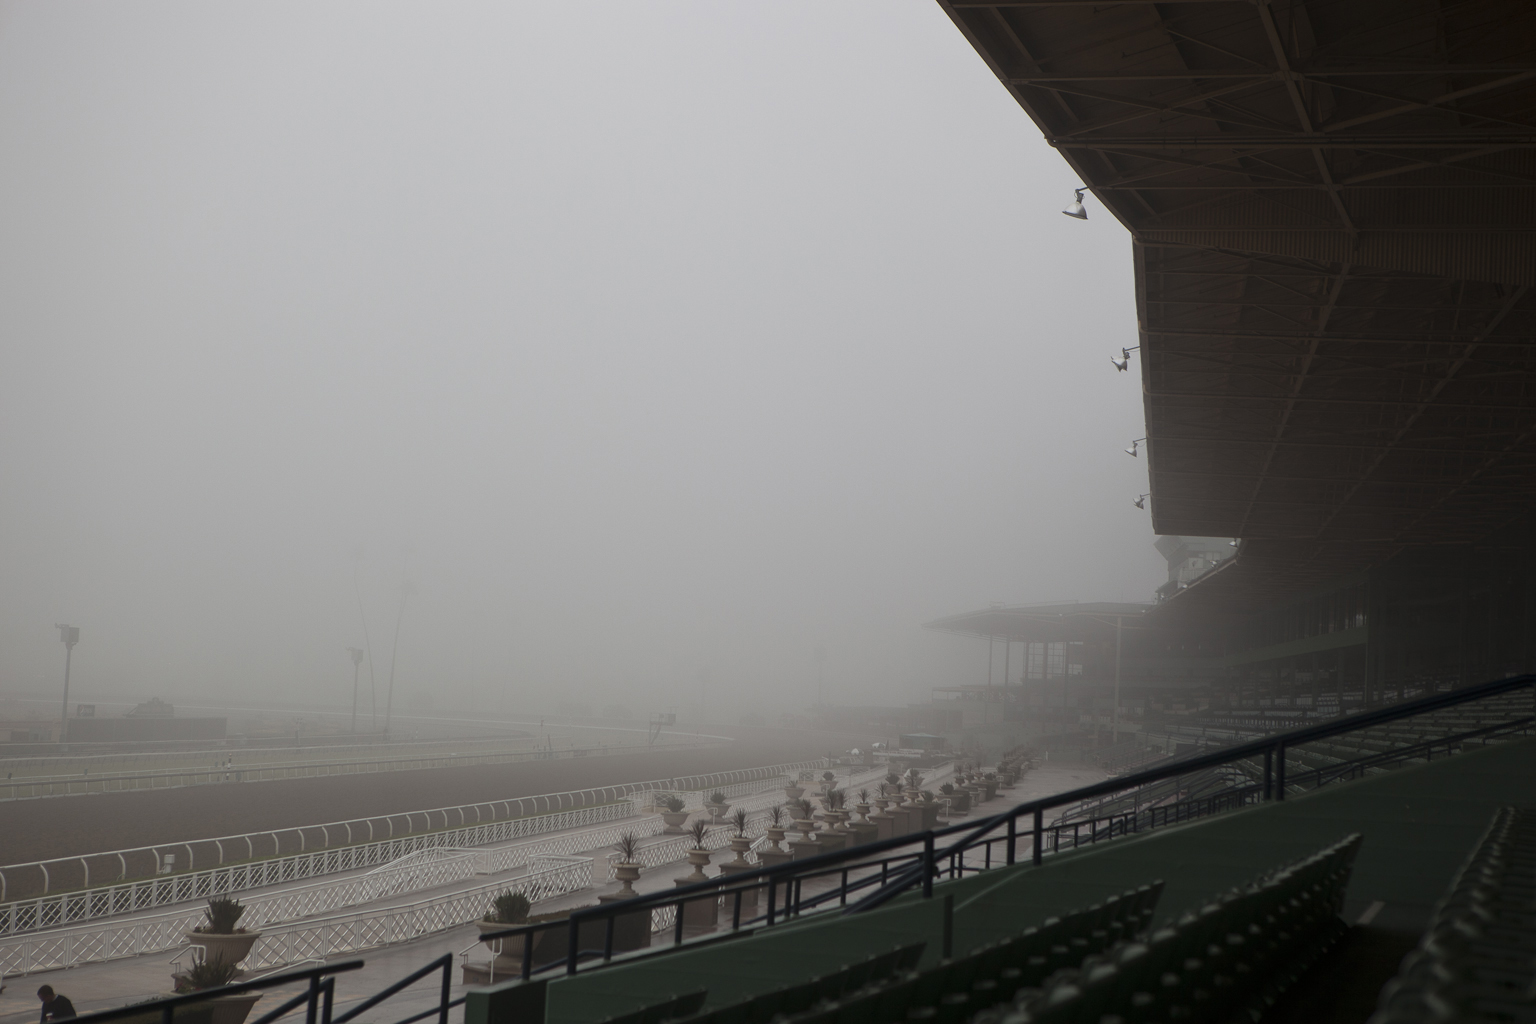 Grandstands in Fog